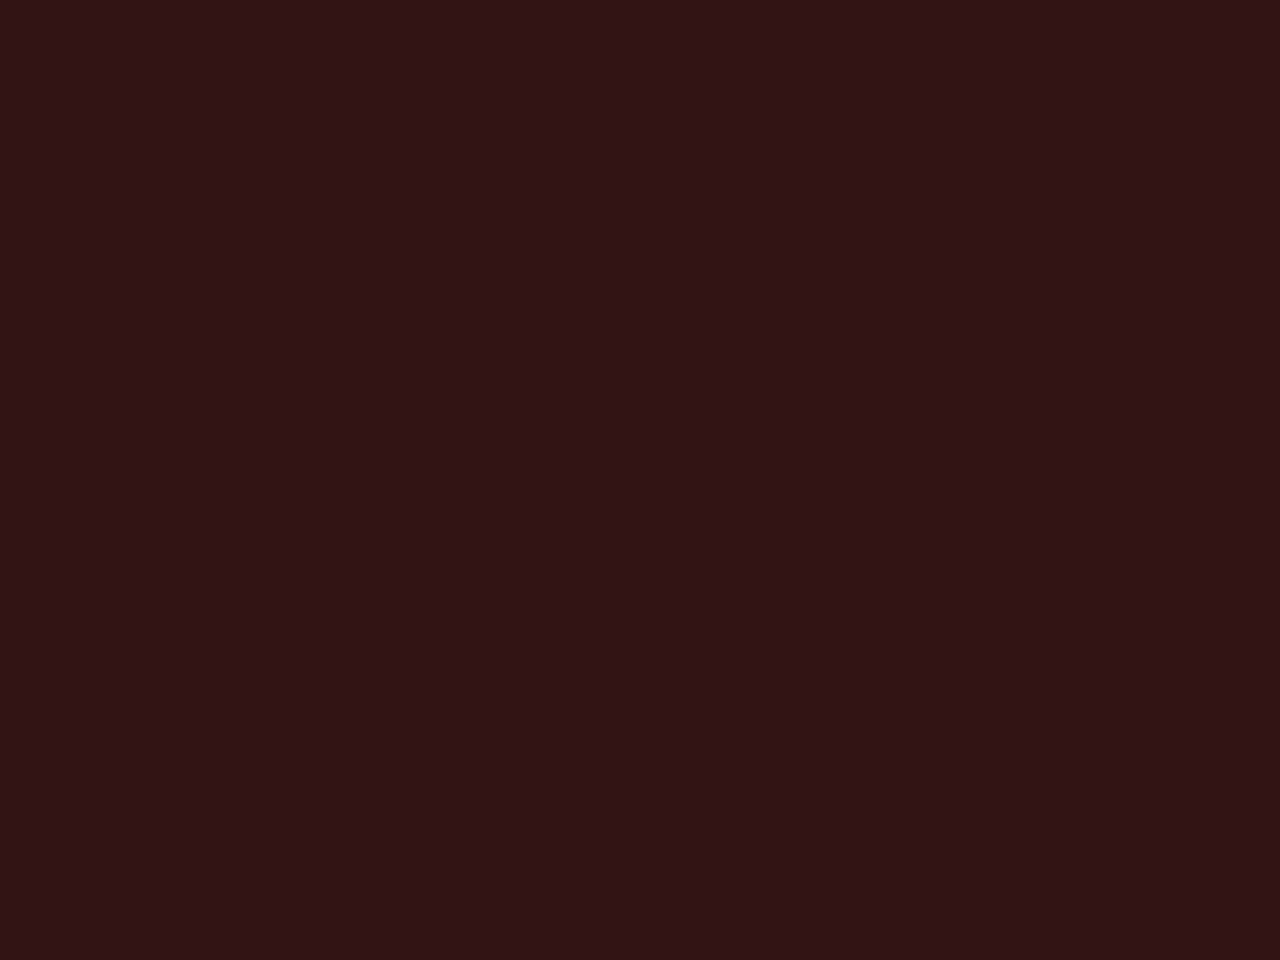 1280x960 Seal Brown Solid Color Background